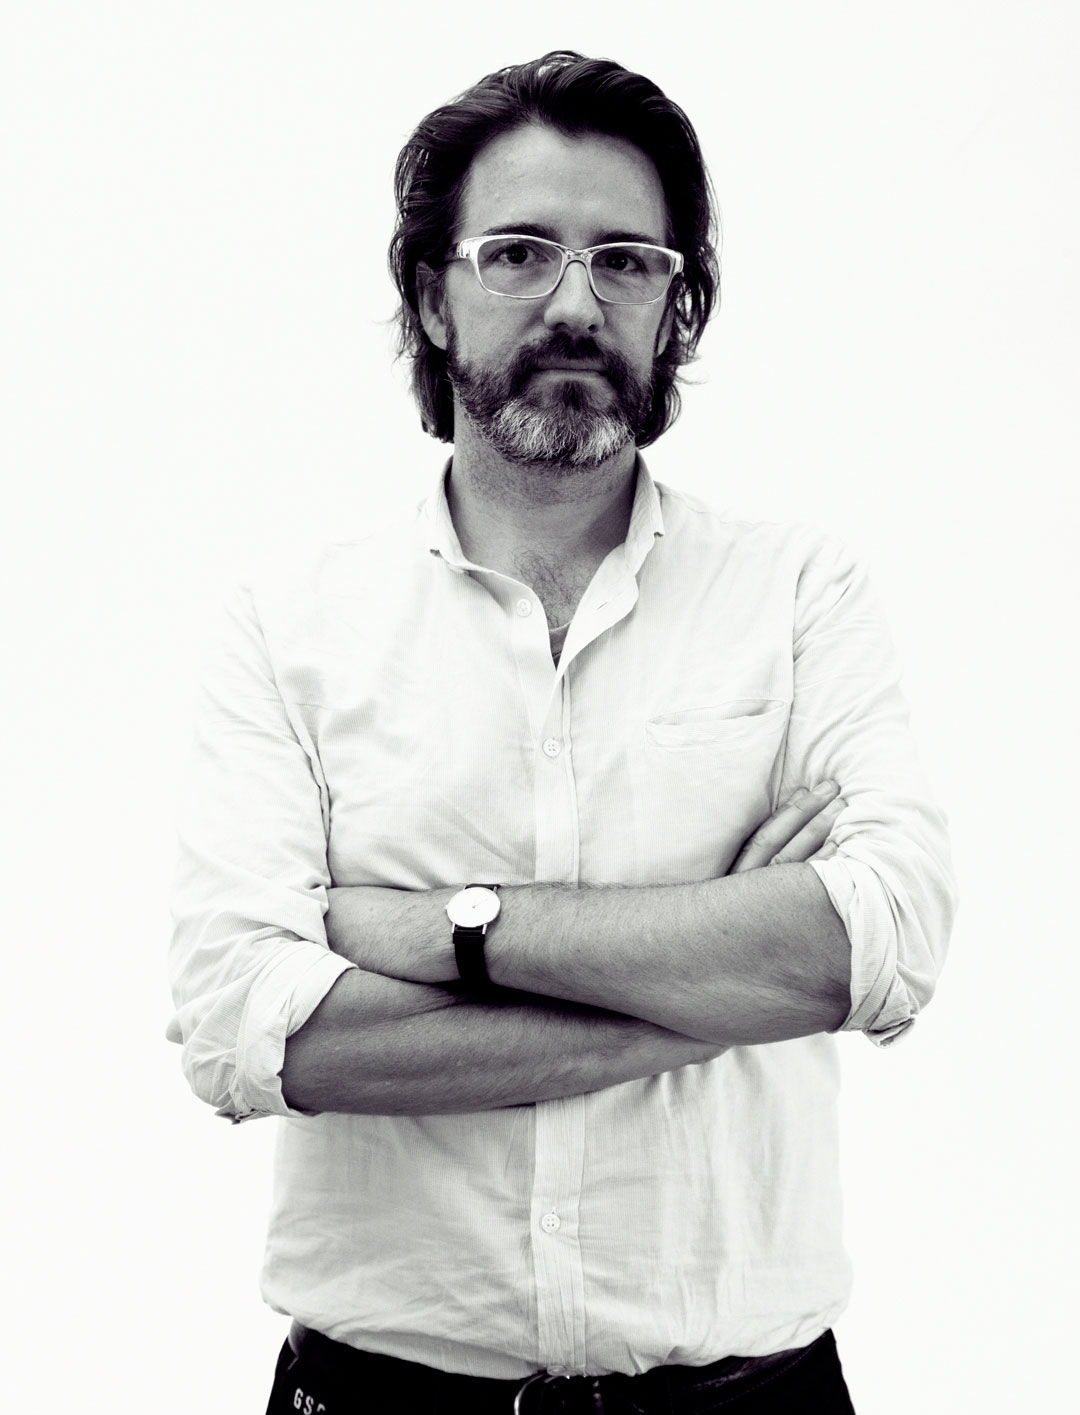 'Street dance is crucial' – Olafur Eliasson on Harlem Gun Crew, his teenage years and the Experience of space